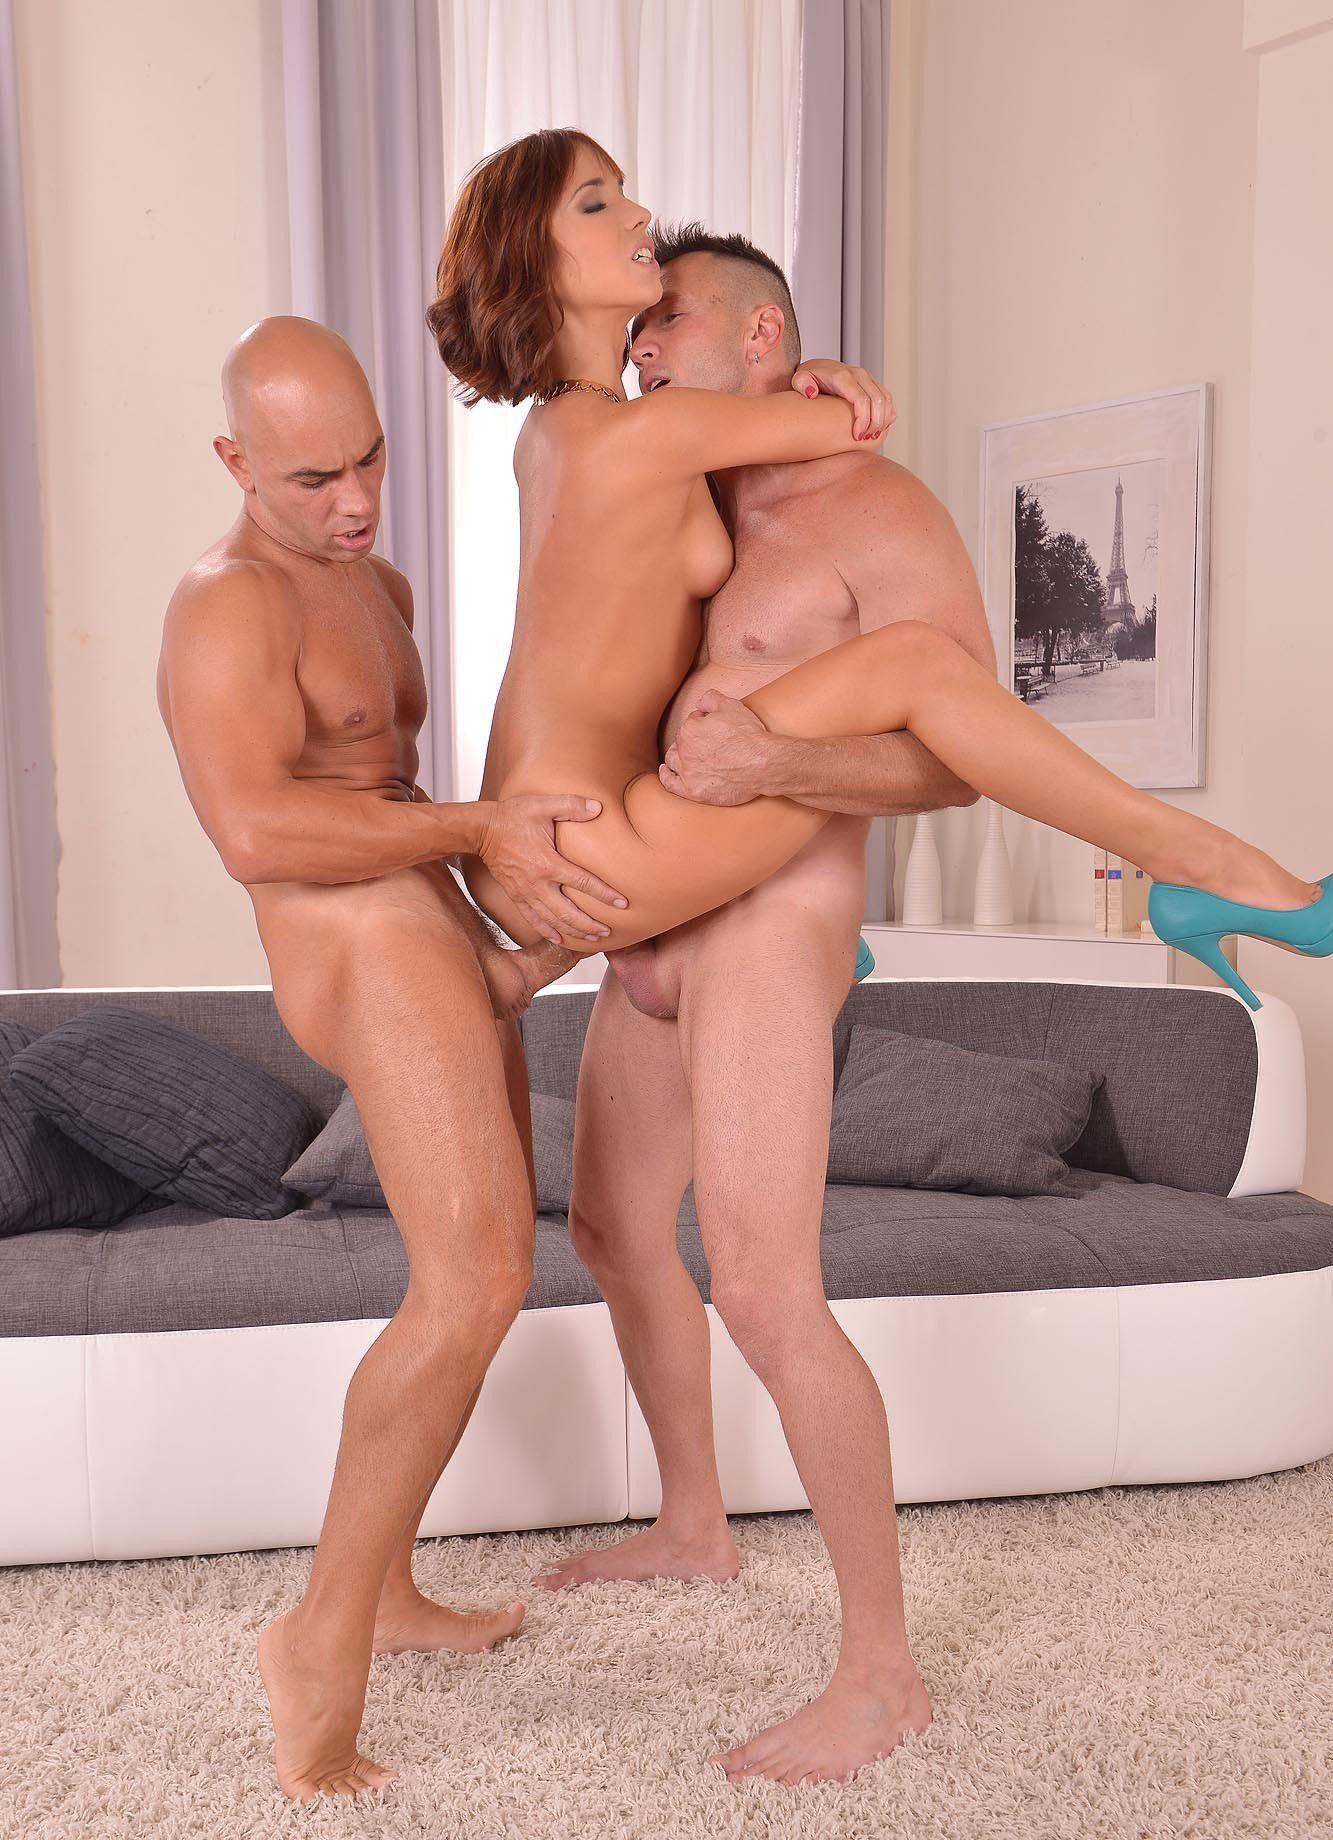 Doggy bigass amateur Housewife fuck sex movies